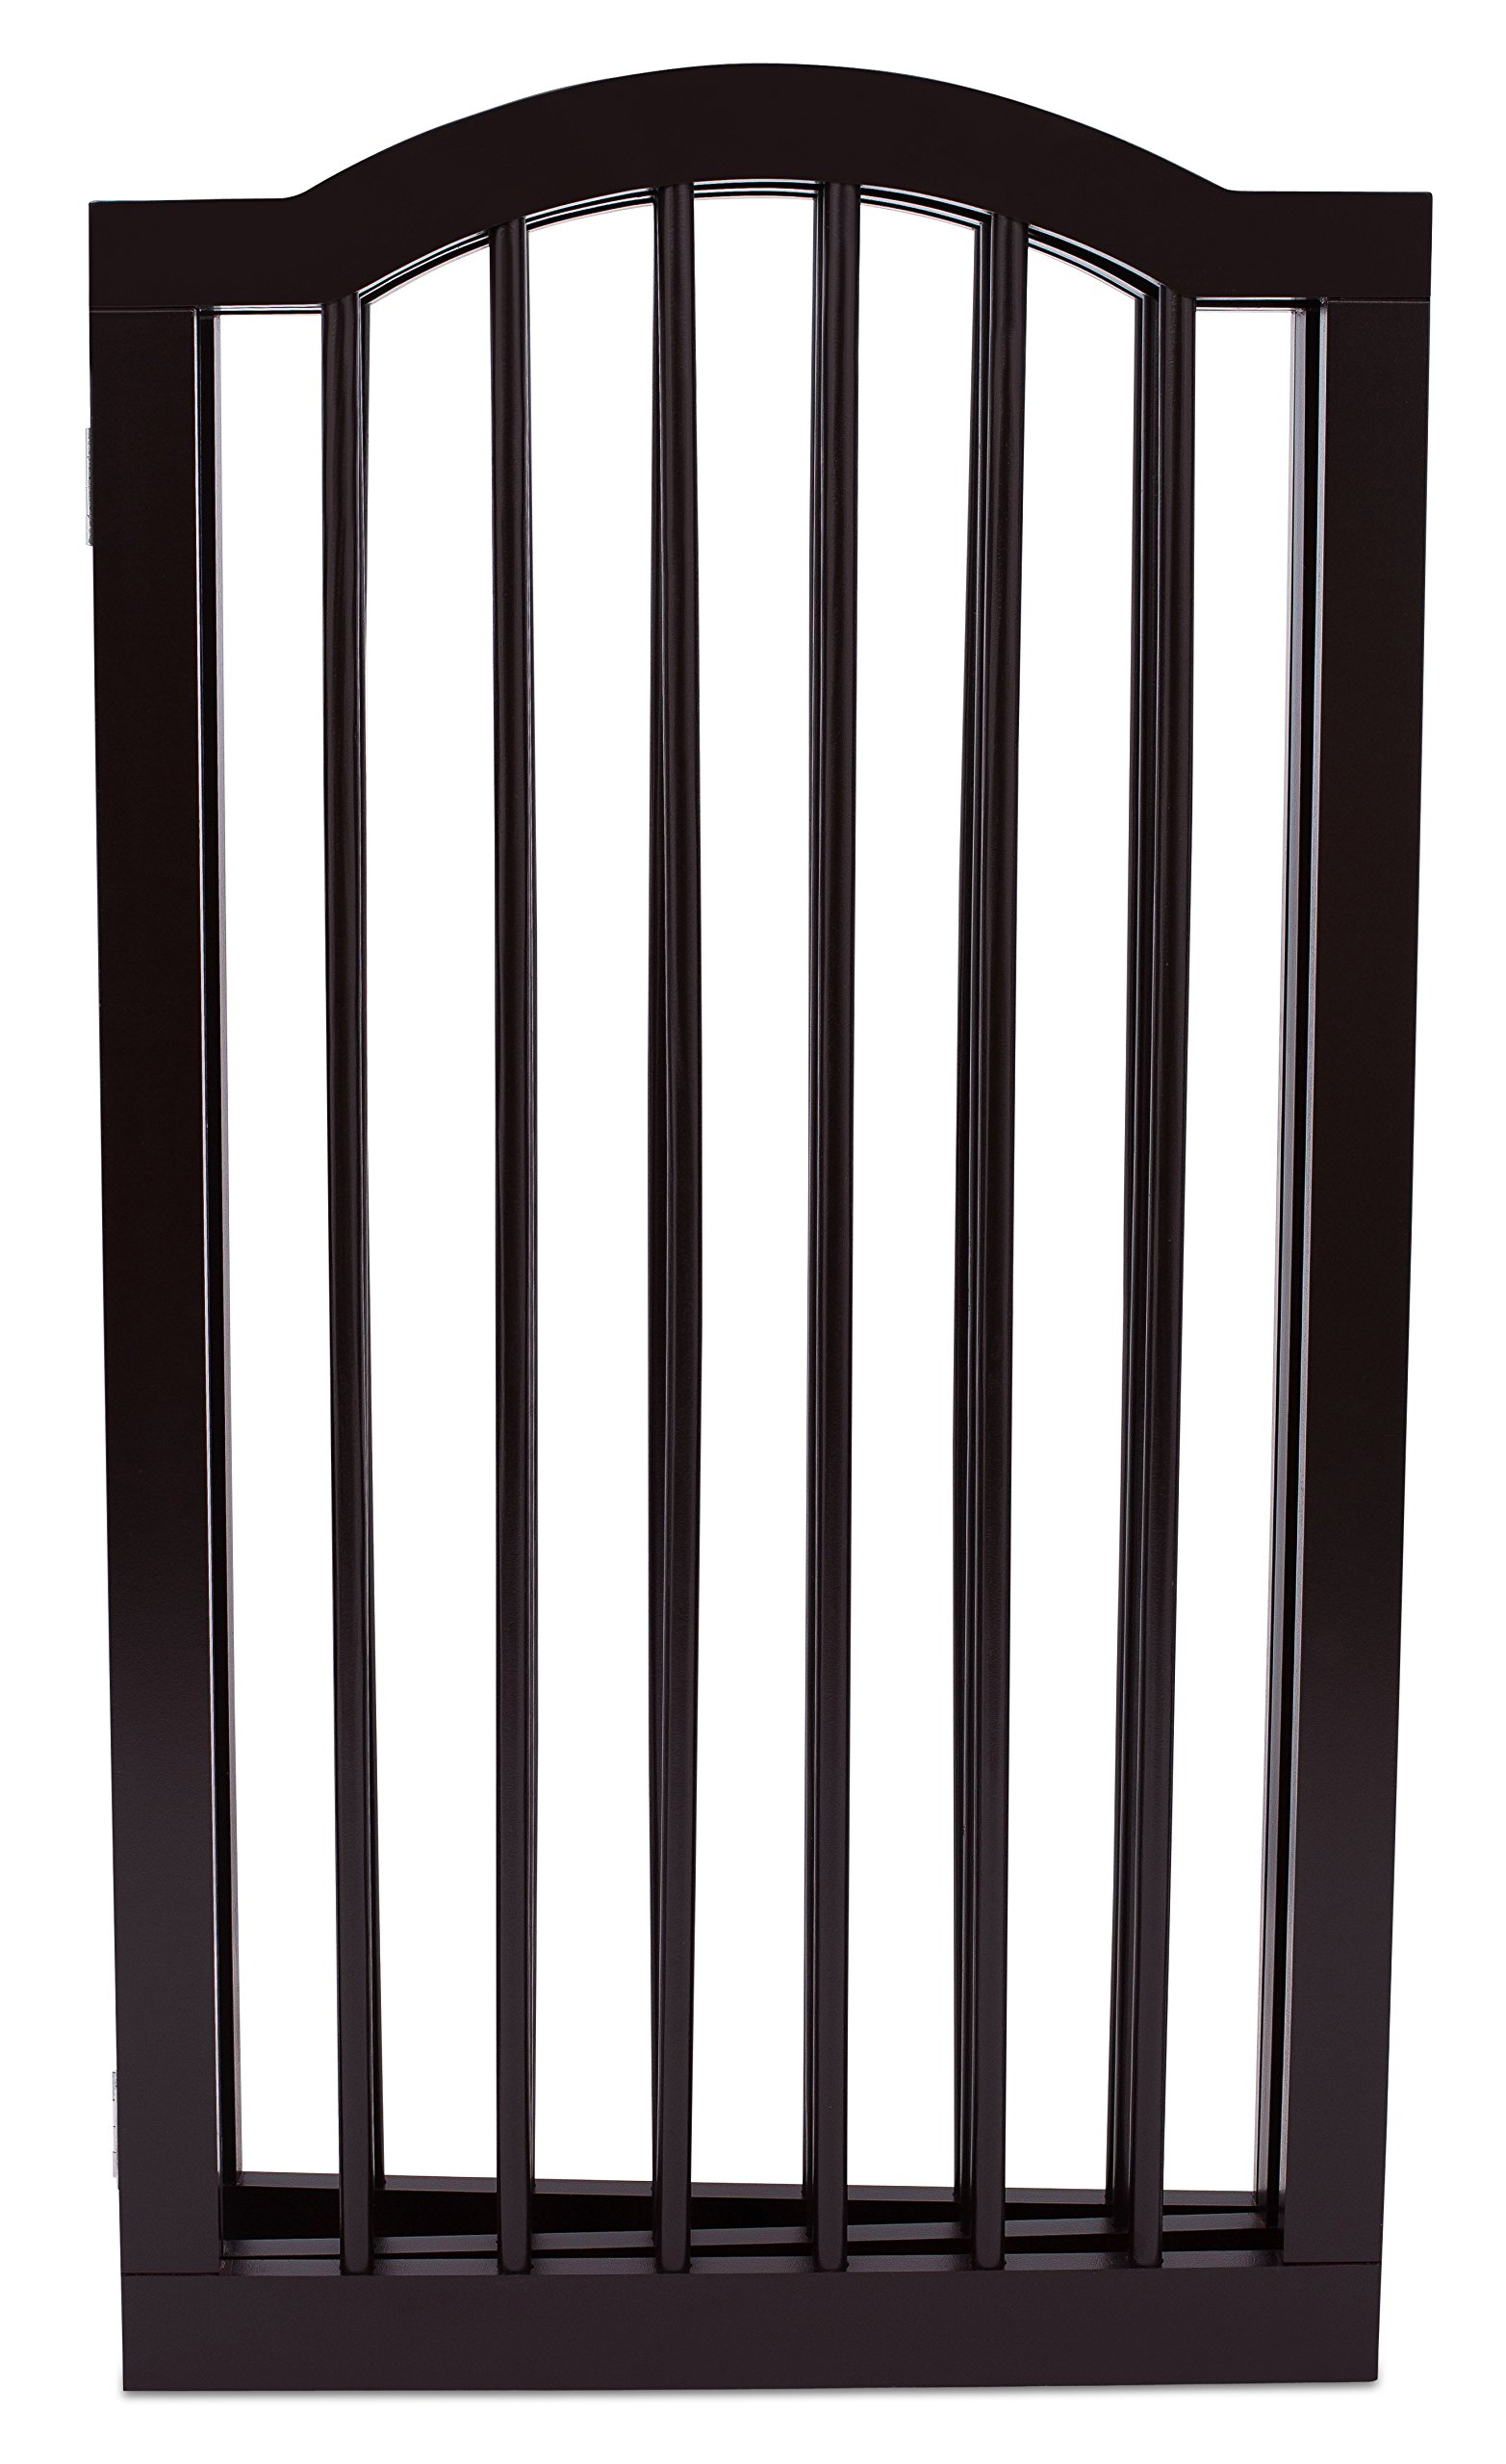 Internet's Best Pet Gate with Arched Top   4 Panel   36 Inch Tall Fence   Free Standing Folding Z Shape Indoor Doorway Hall Stairs Dog Puppy Gate   Fully Assembled   Espresso   Wooden by Internet's Best (Image #2)